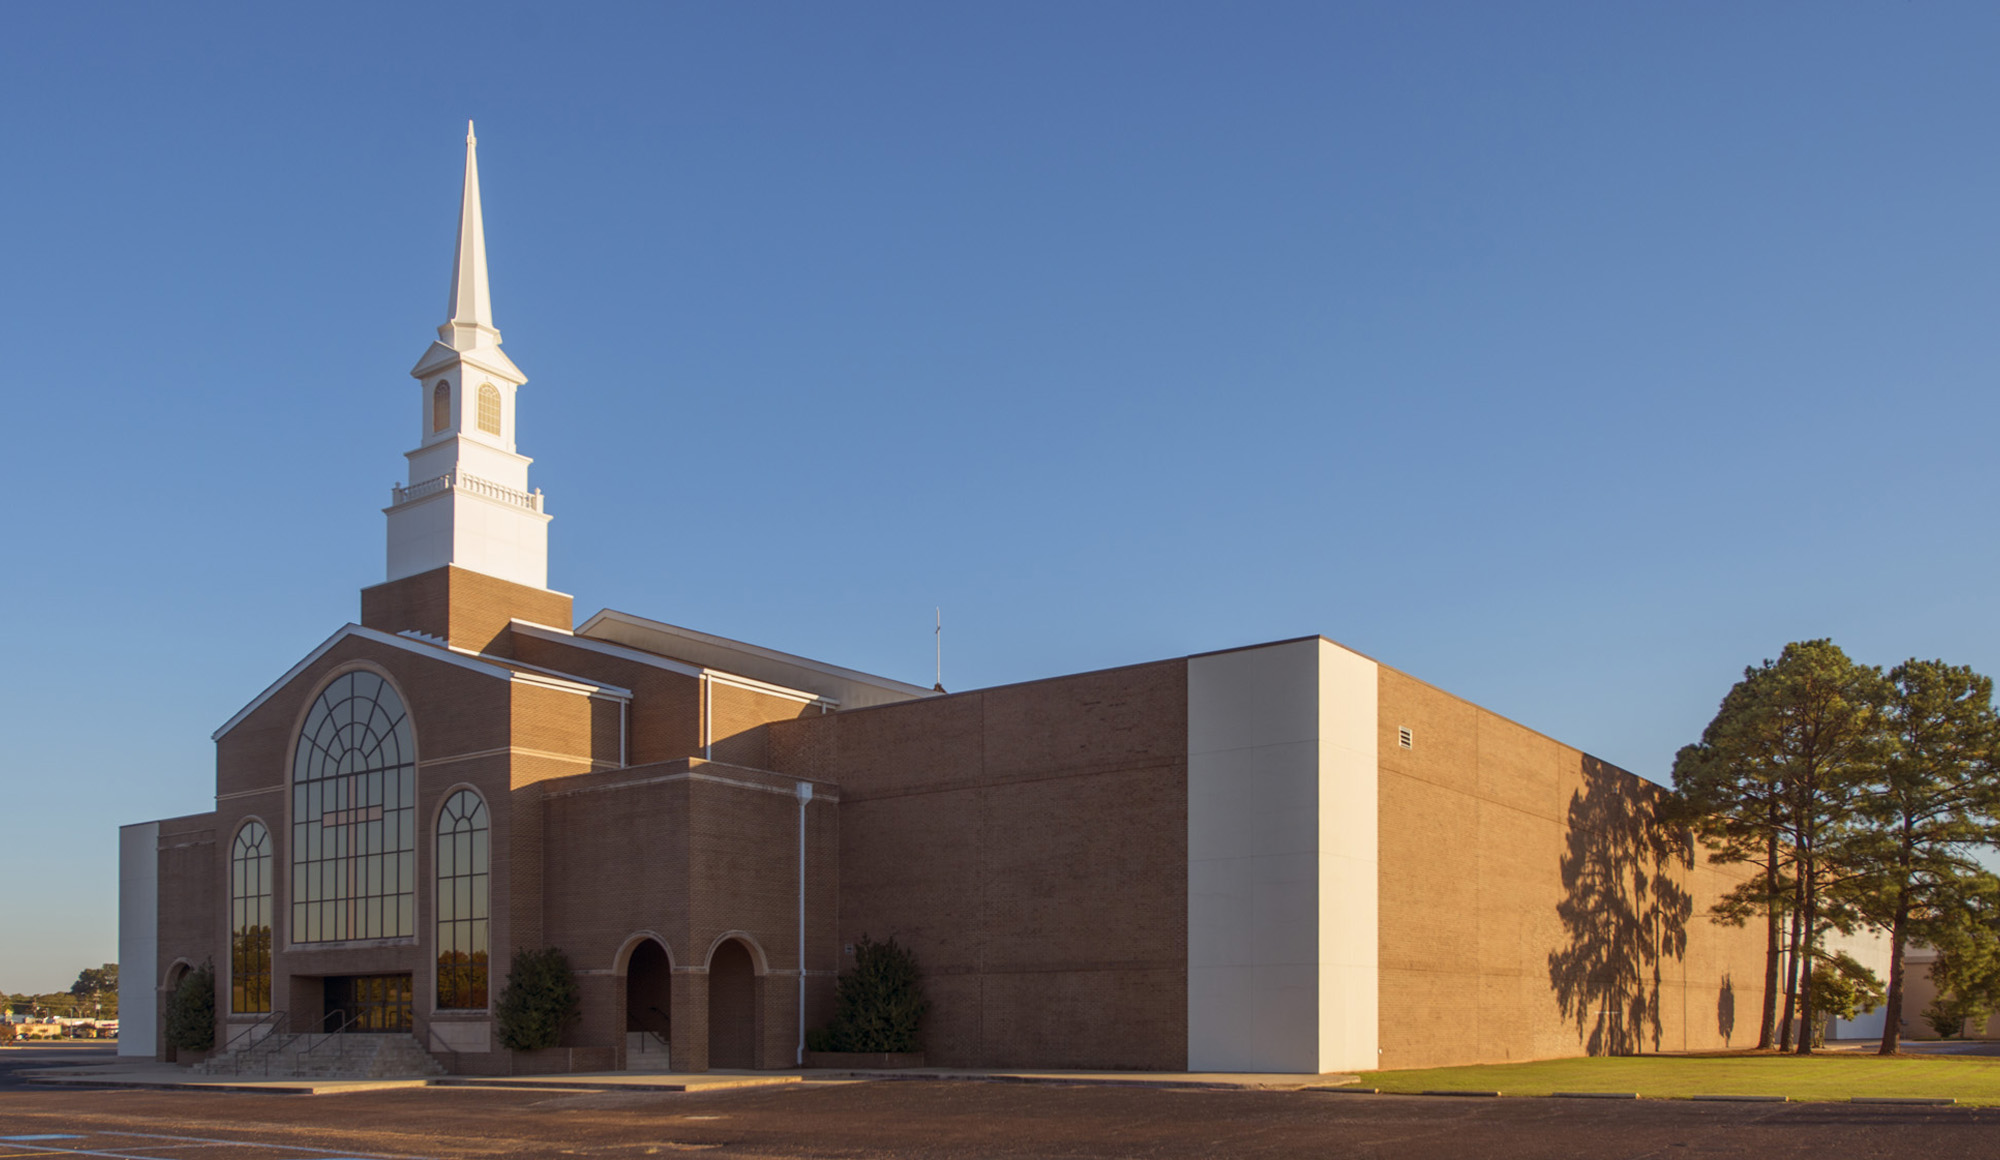 Summer Grove Baptist Church